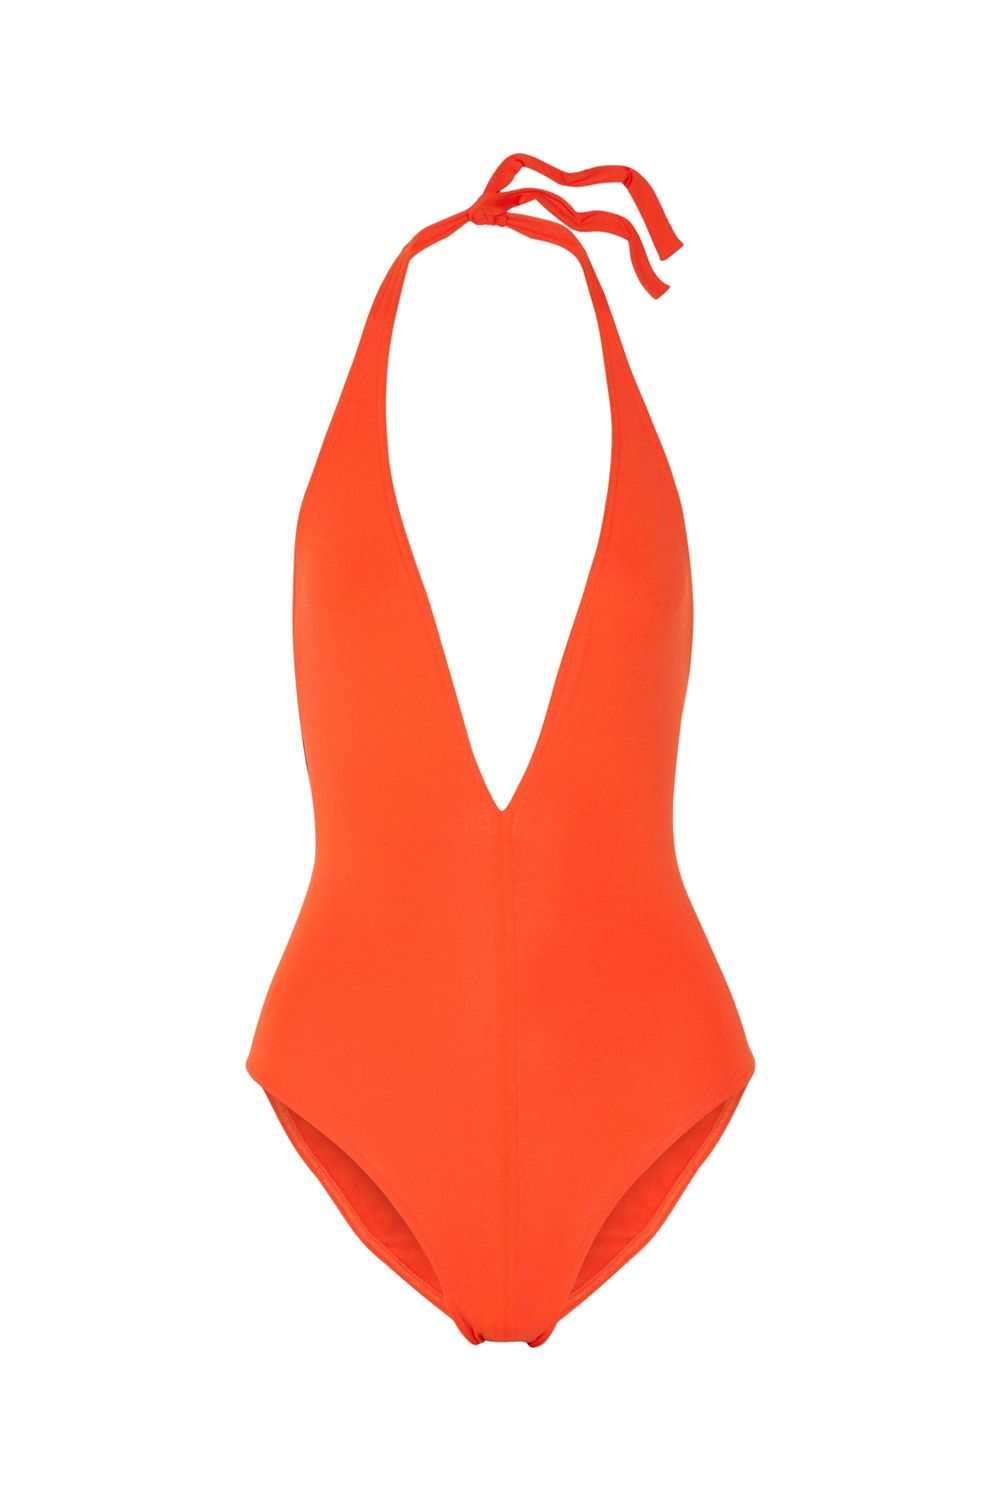 """<p>If you have to be photographed in a maillot, make it one by Eres, <a href=""""http://www.marieclaire.com/fashion/news/a21722/eres-swimsuit/"""" target=""""_blank"""" data-tracking-id=""""recirc-text-link"""">*the* unofficial outfitter of the chicest fashion girls</a>. (Aside: Retro shapes are also a good idea.)</p><p>$385, <a href=""""https://www.net-a-porter.com/us/en/product/730445/Eres/les-essentiels-cachette-halterneck-swimsuit"""" target=""""_blank"""" data-tracking-id=""""recirc-text-link"""">net-a-porter.com</a>.</p>"""